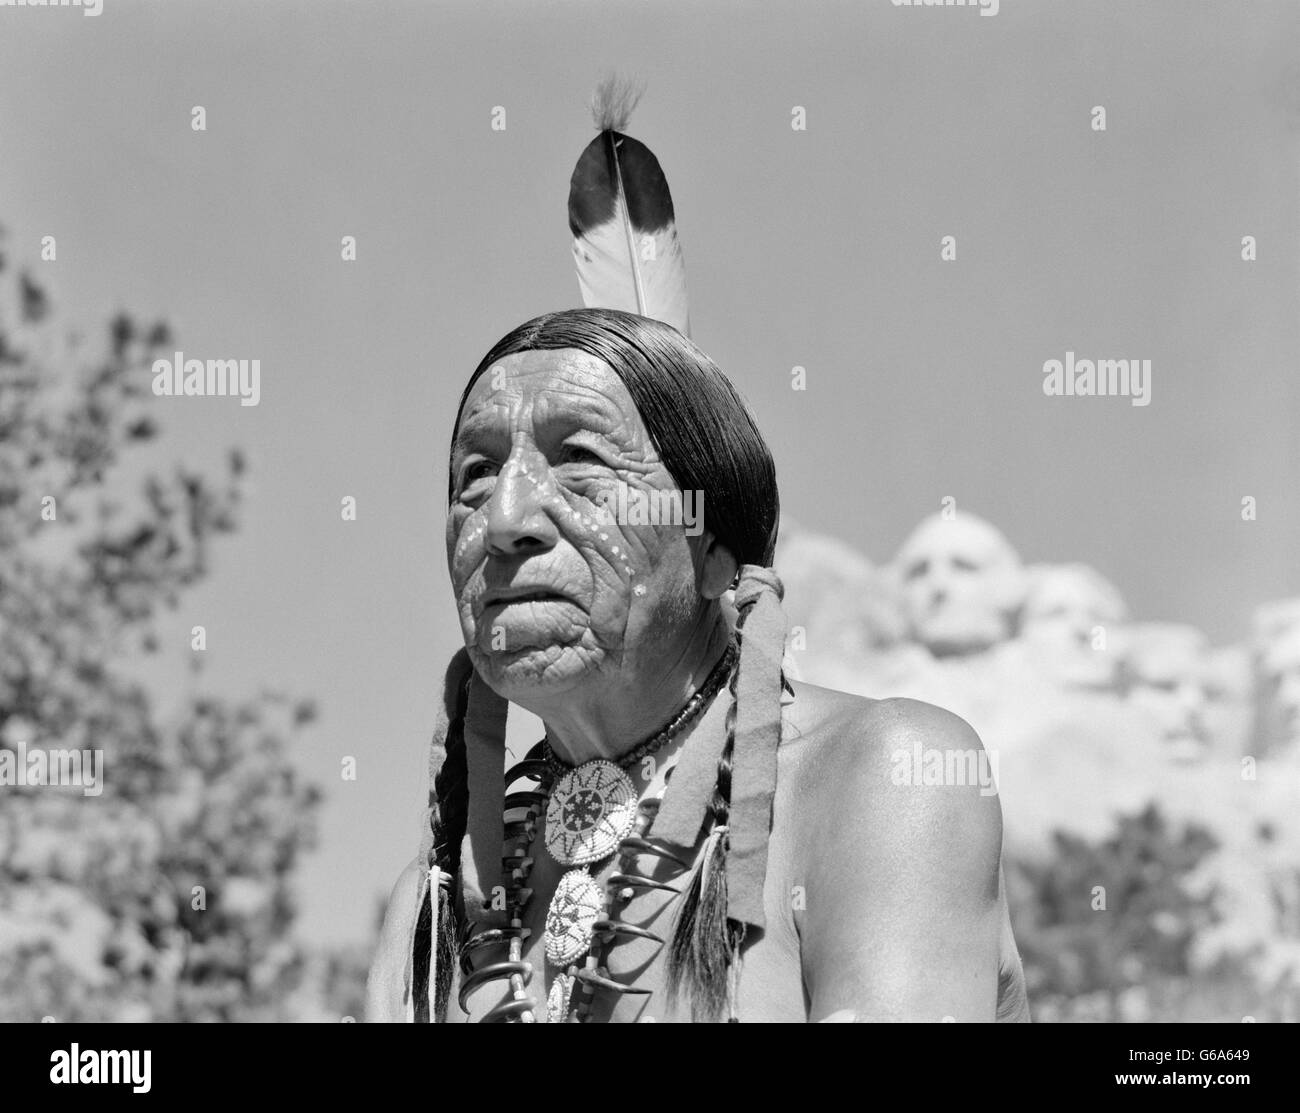 1950s 1960s NATIVE AMERICAN SIOUX INDIAN MAN WITH MOUNT RUSHMORE SOUTH DAKOTA IN BACKGROUND - Stock Image